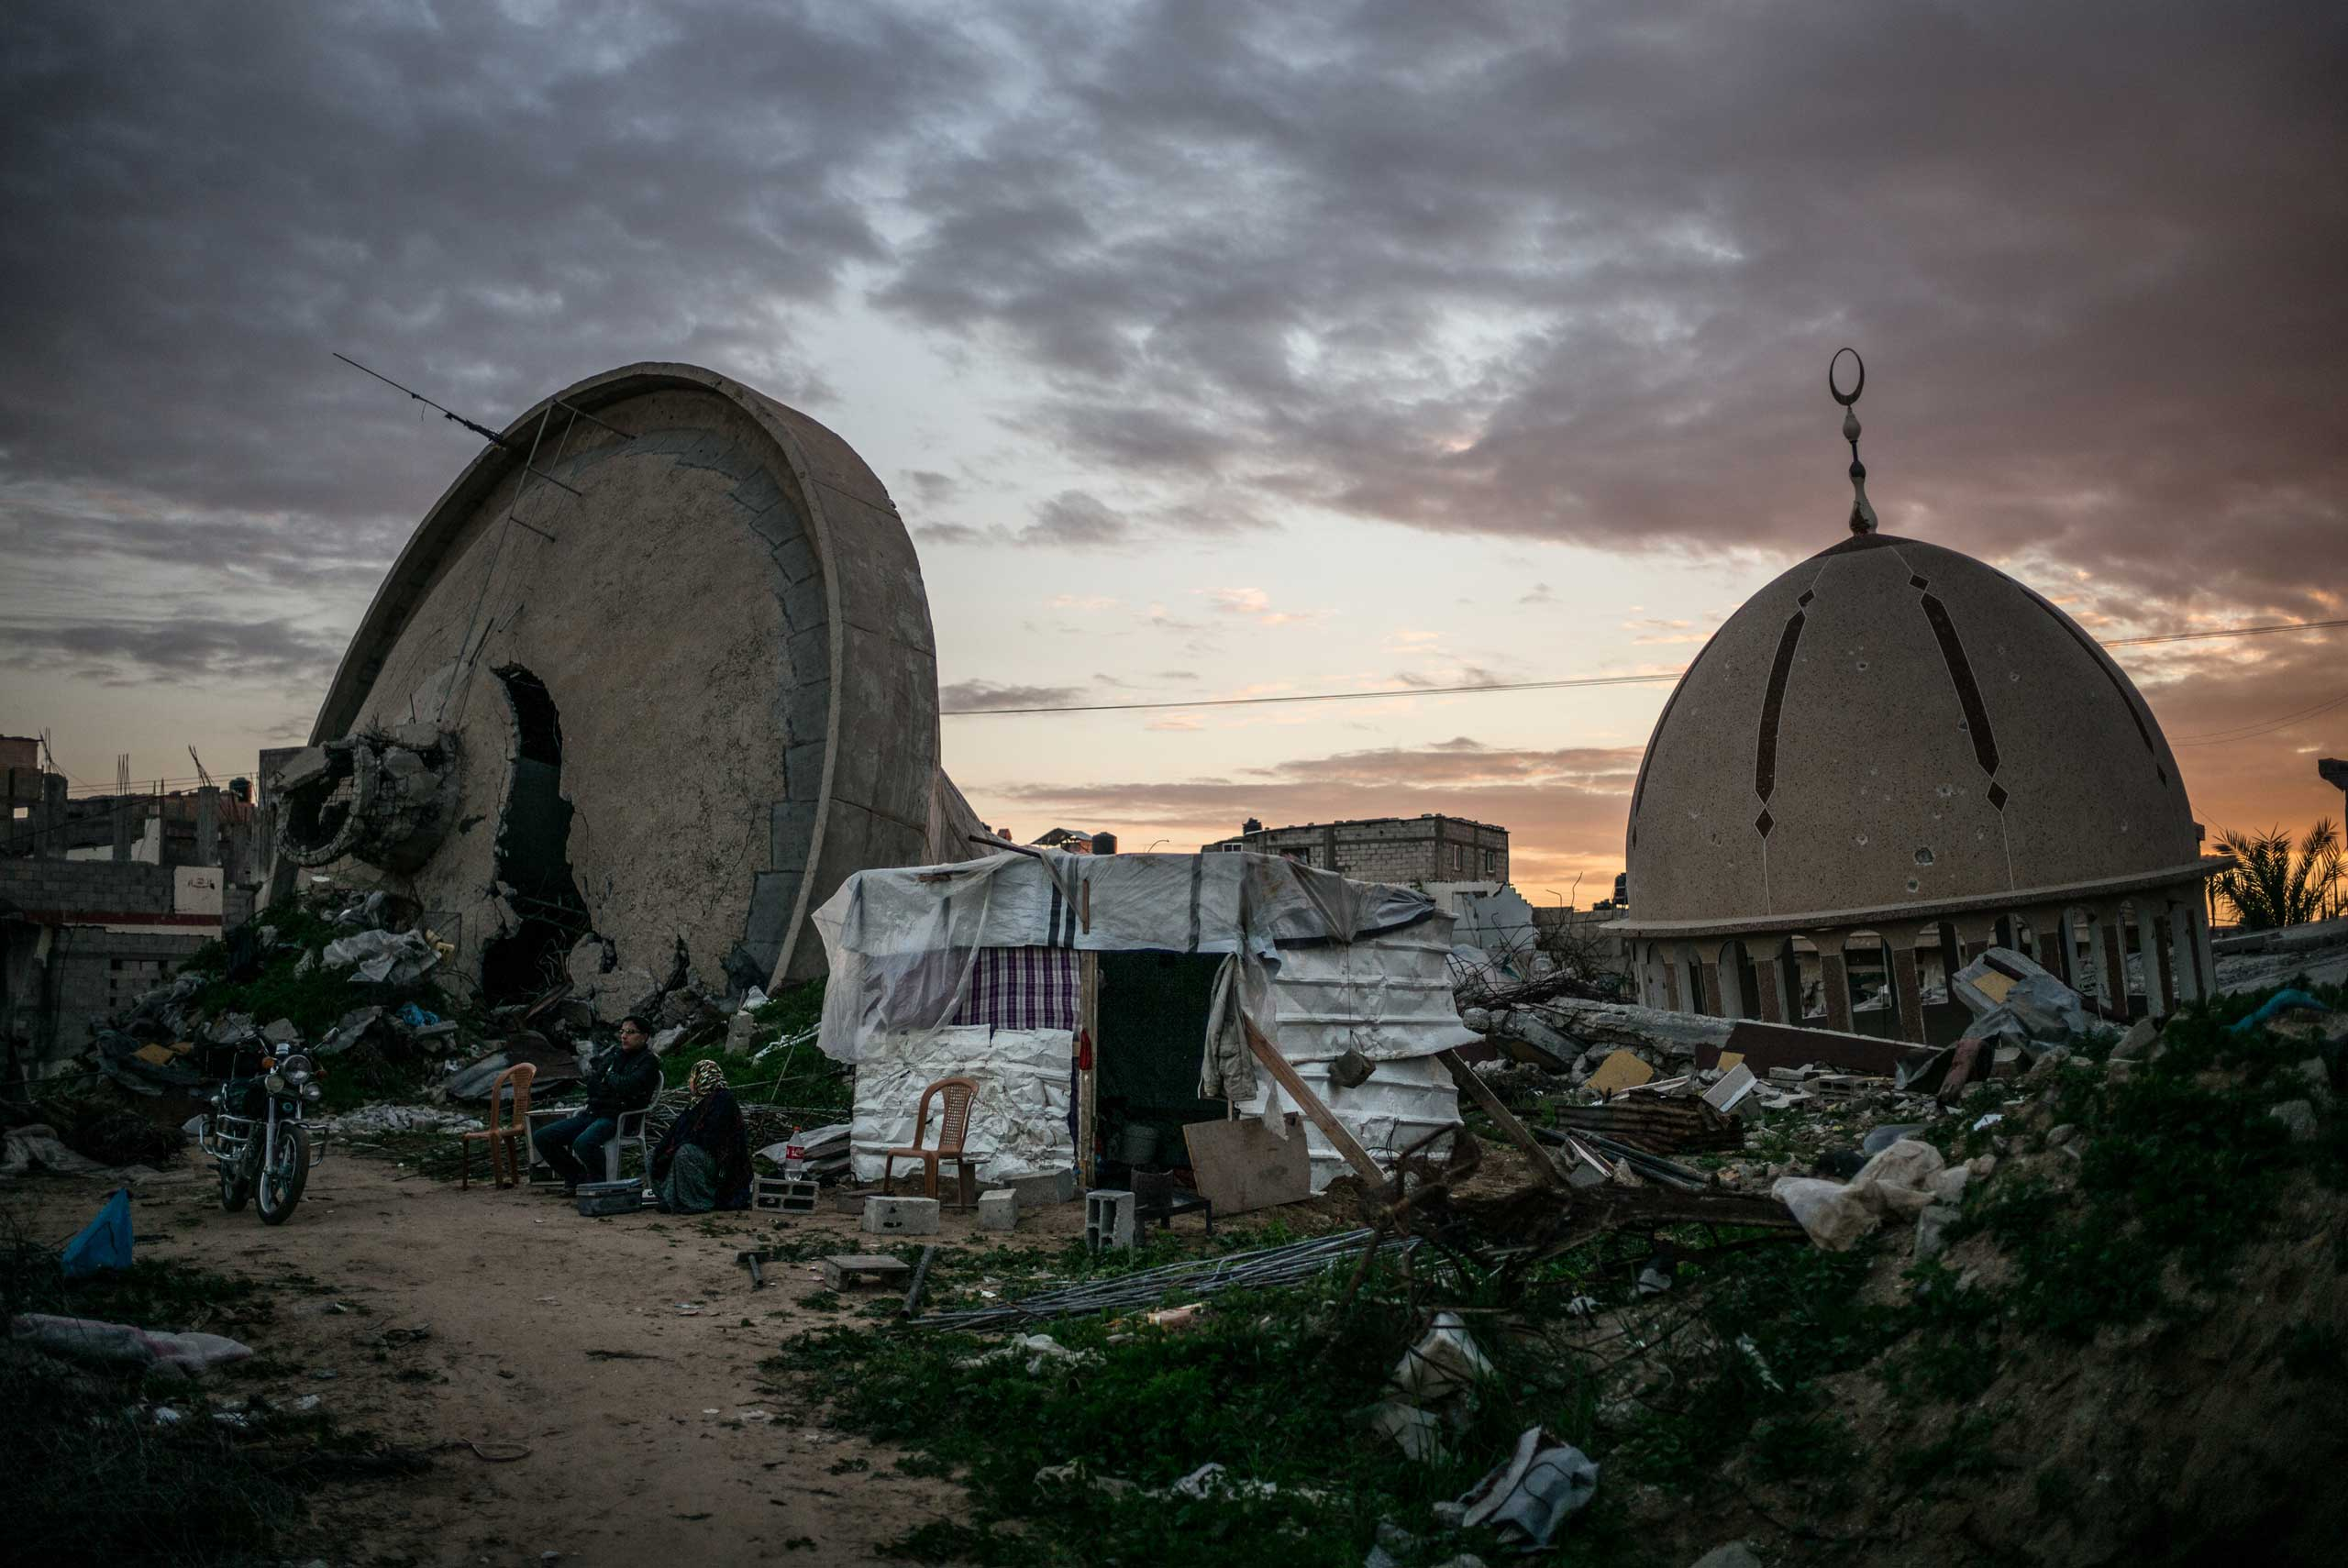 Khuza'a center, in the south of the Gaza Strip, has been heavily damaged during the last assault, known as Operation Protective Edge. The Gaza Strip, December 2014.